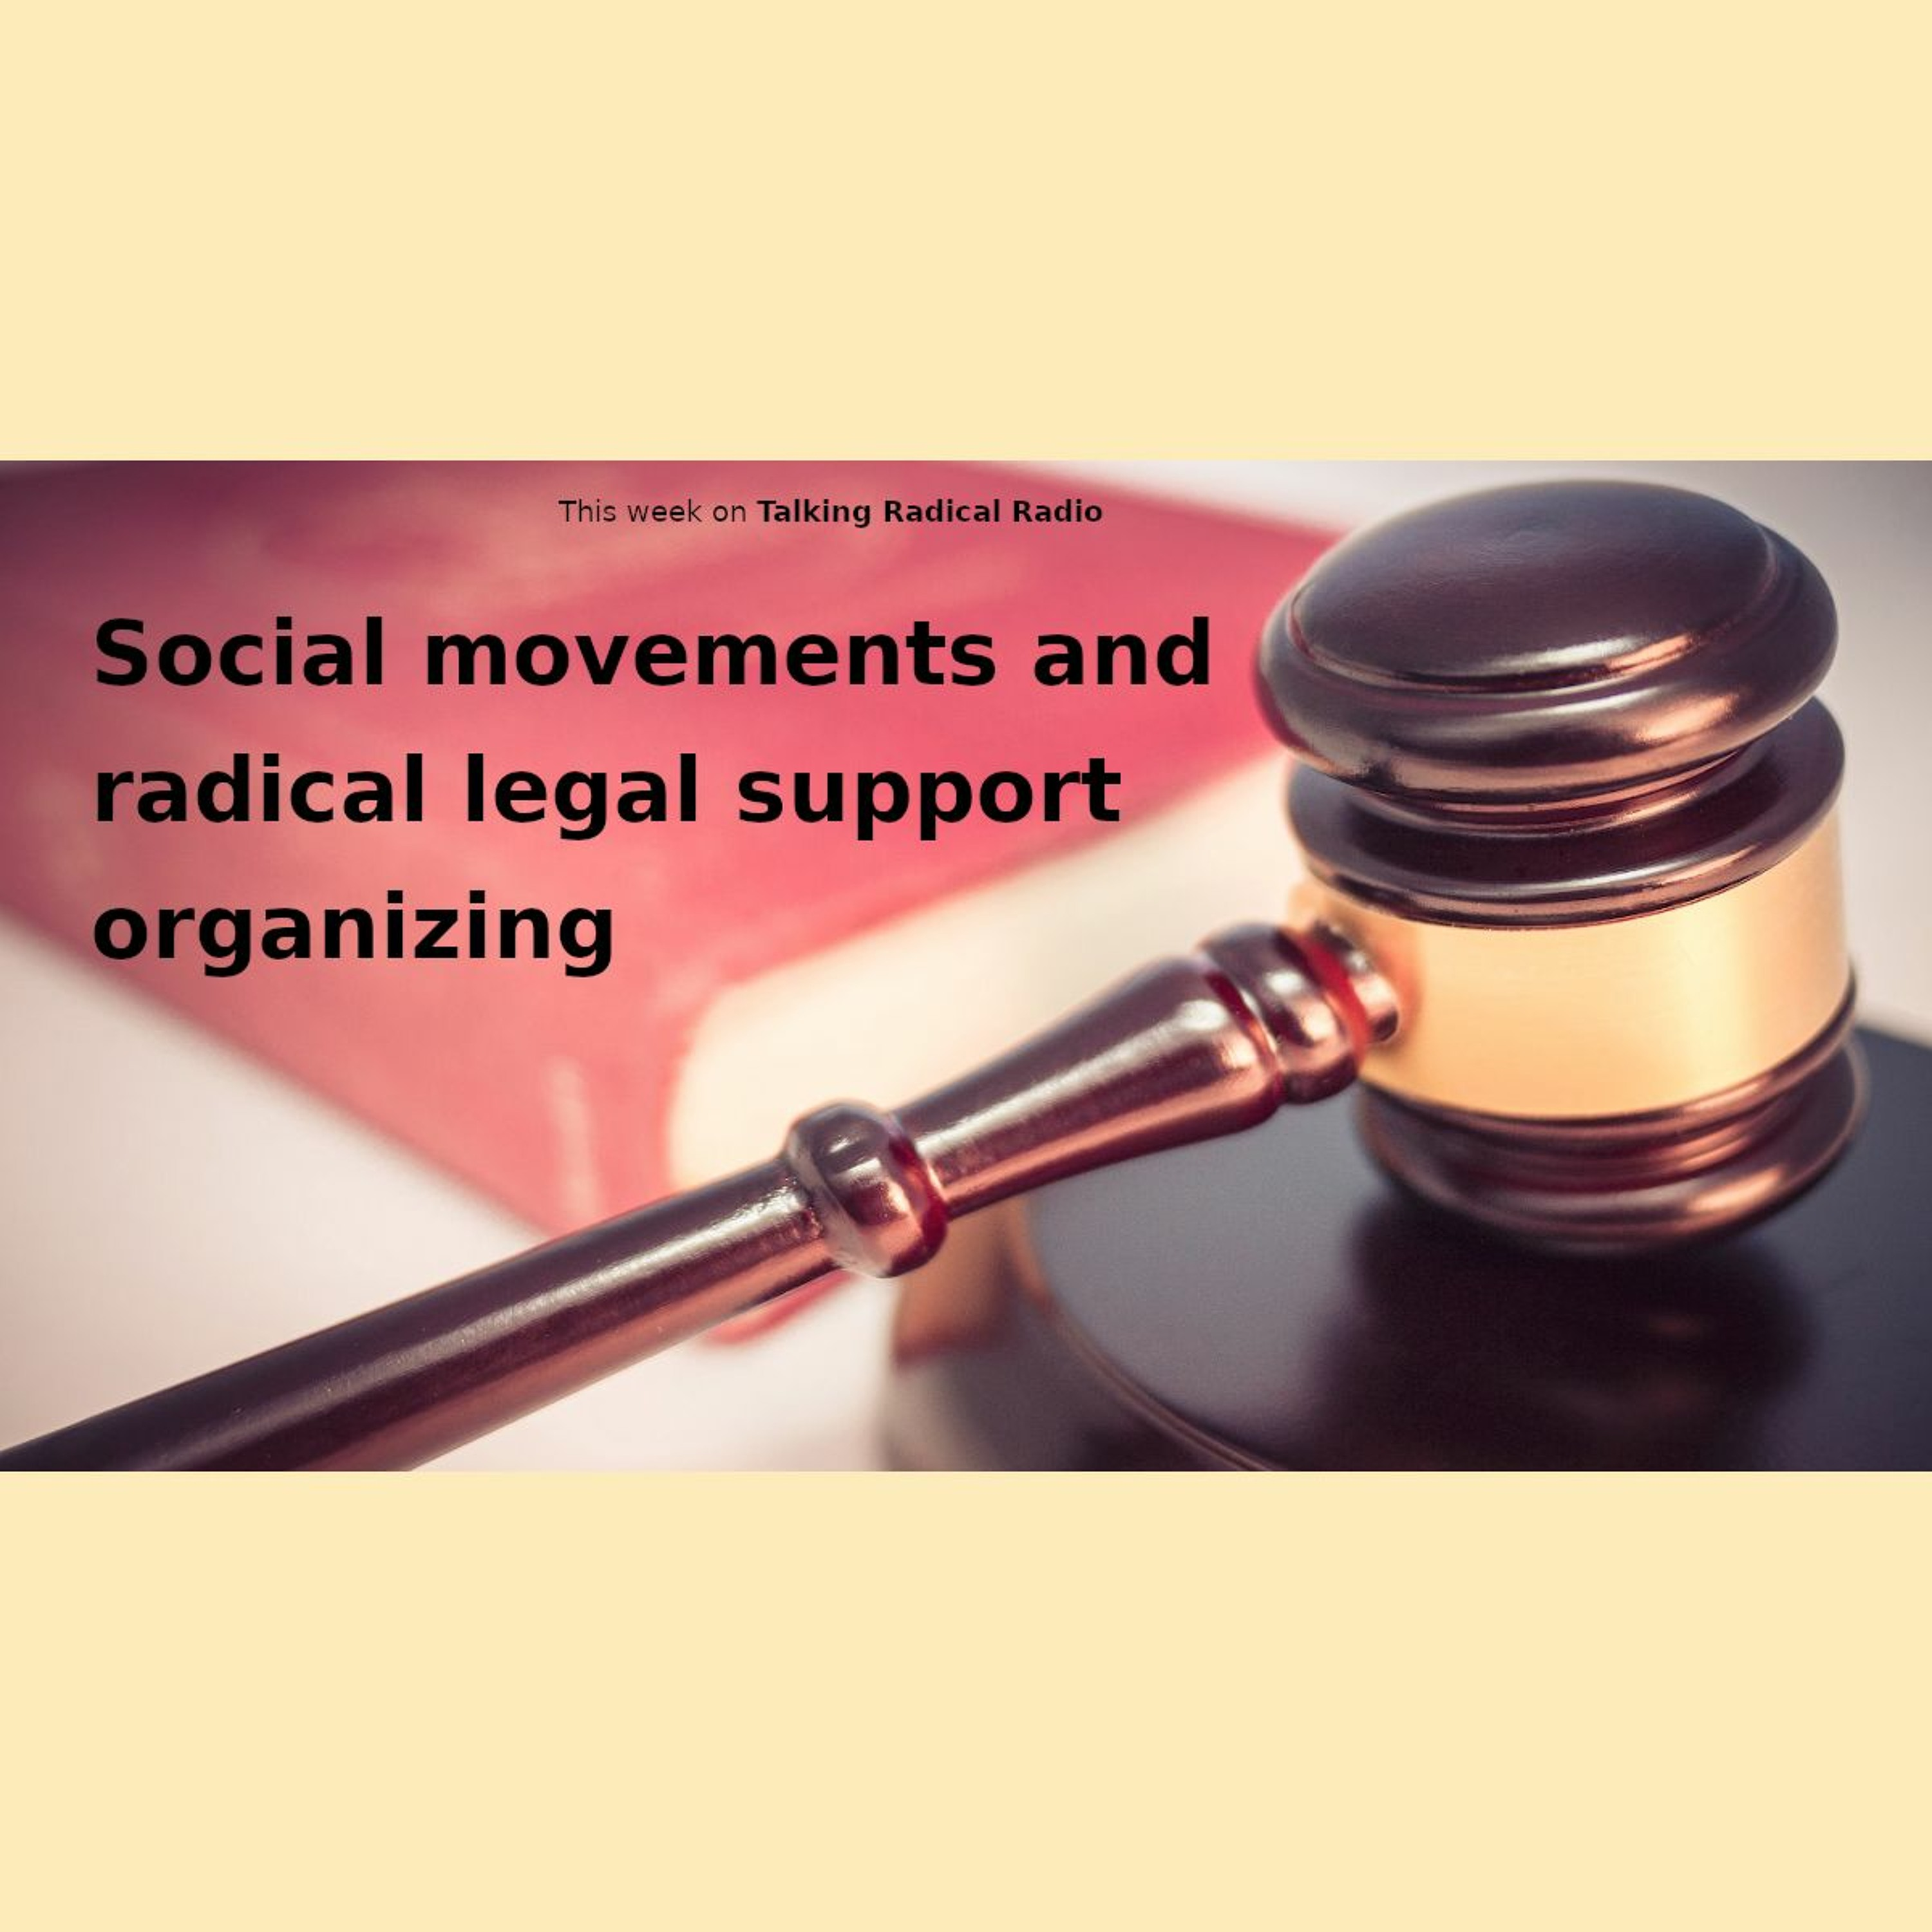 Social movements and radical legal support organizing